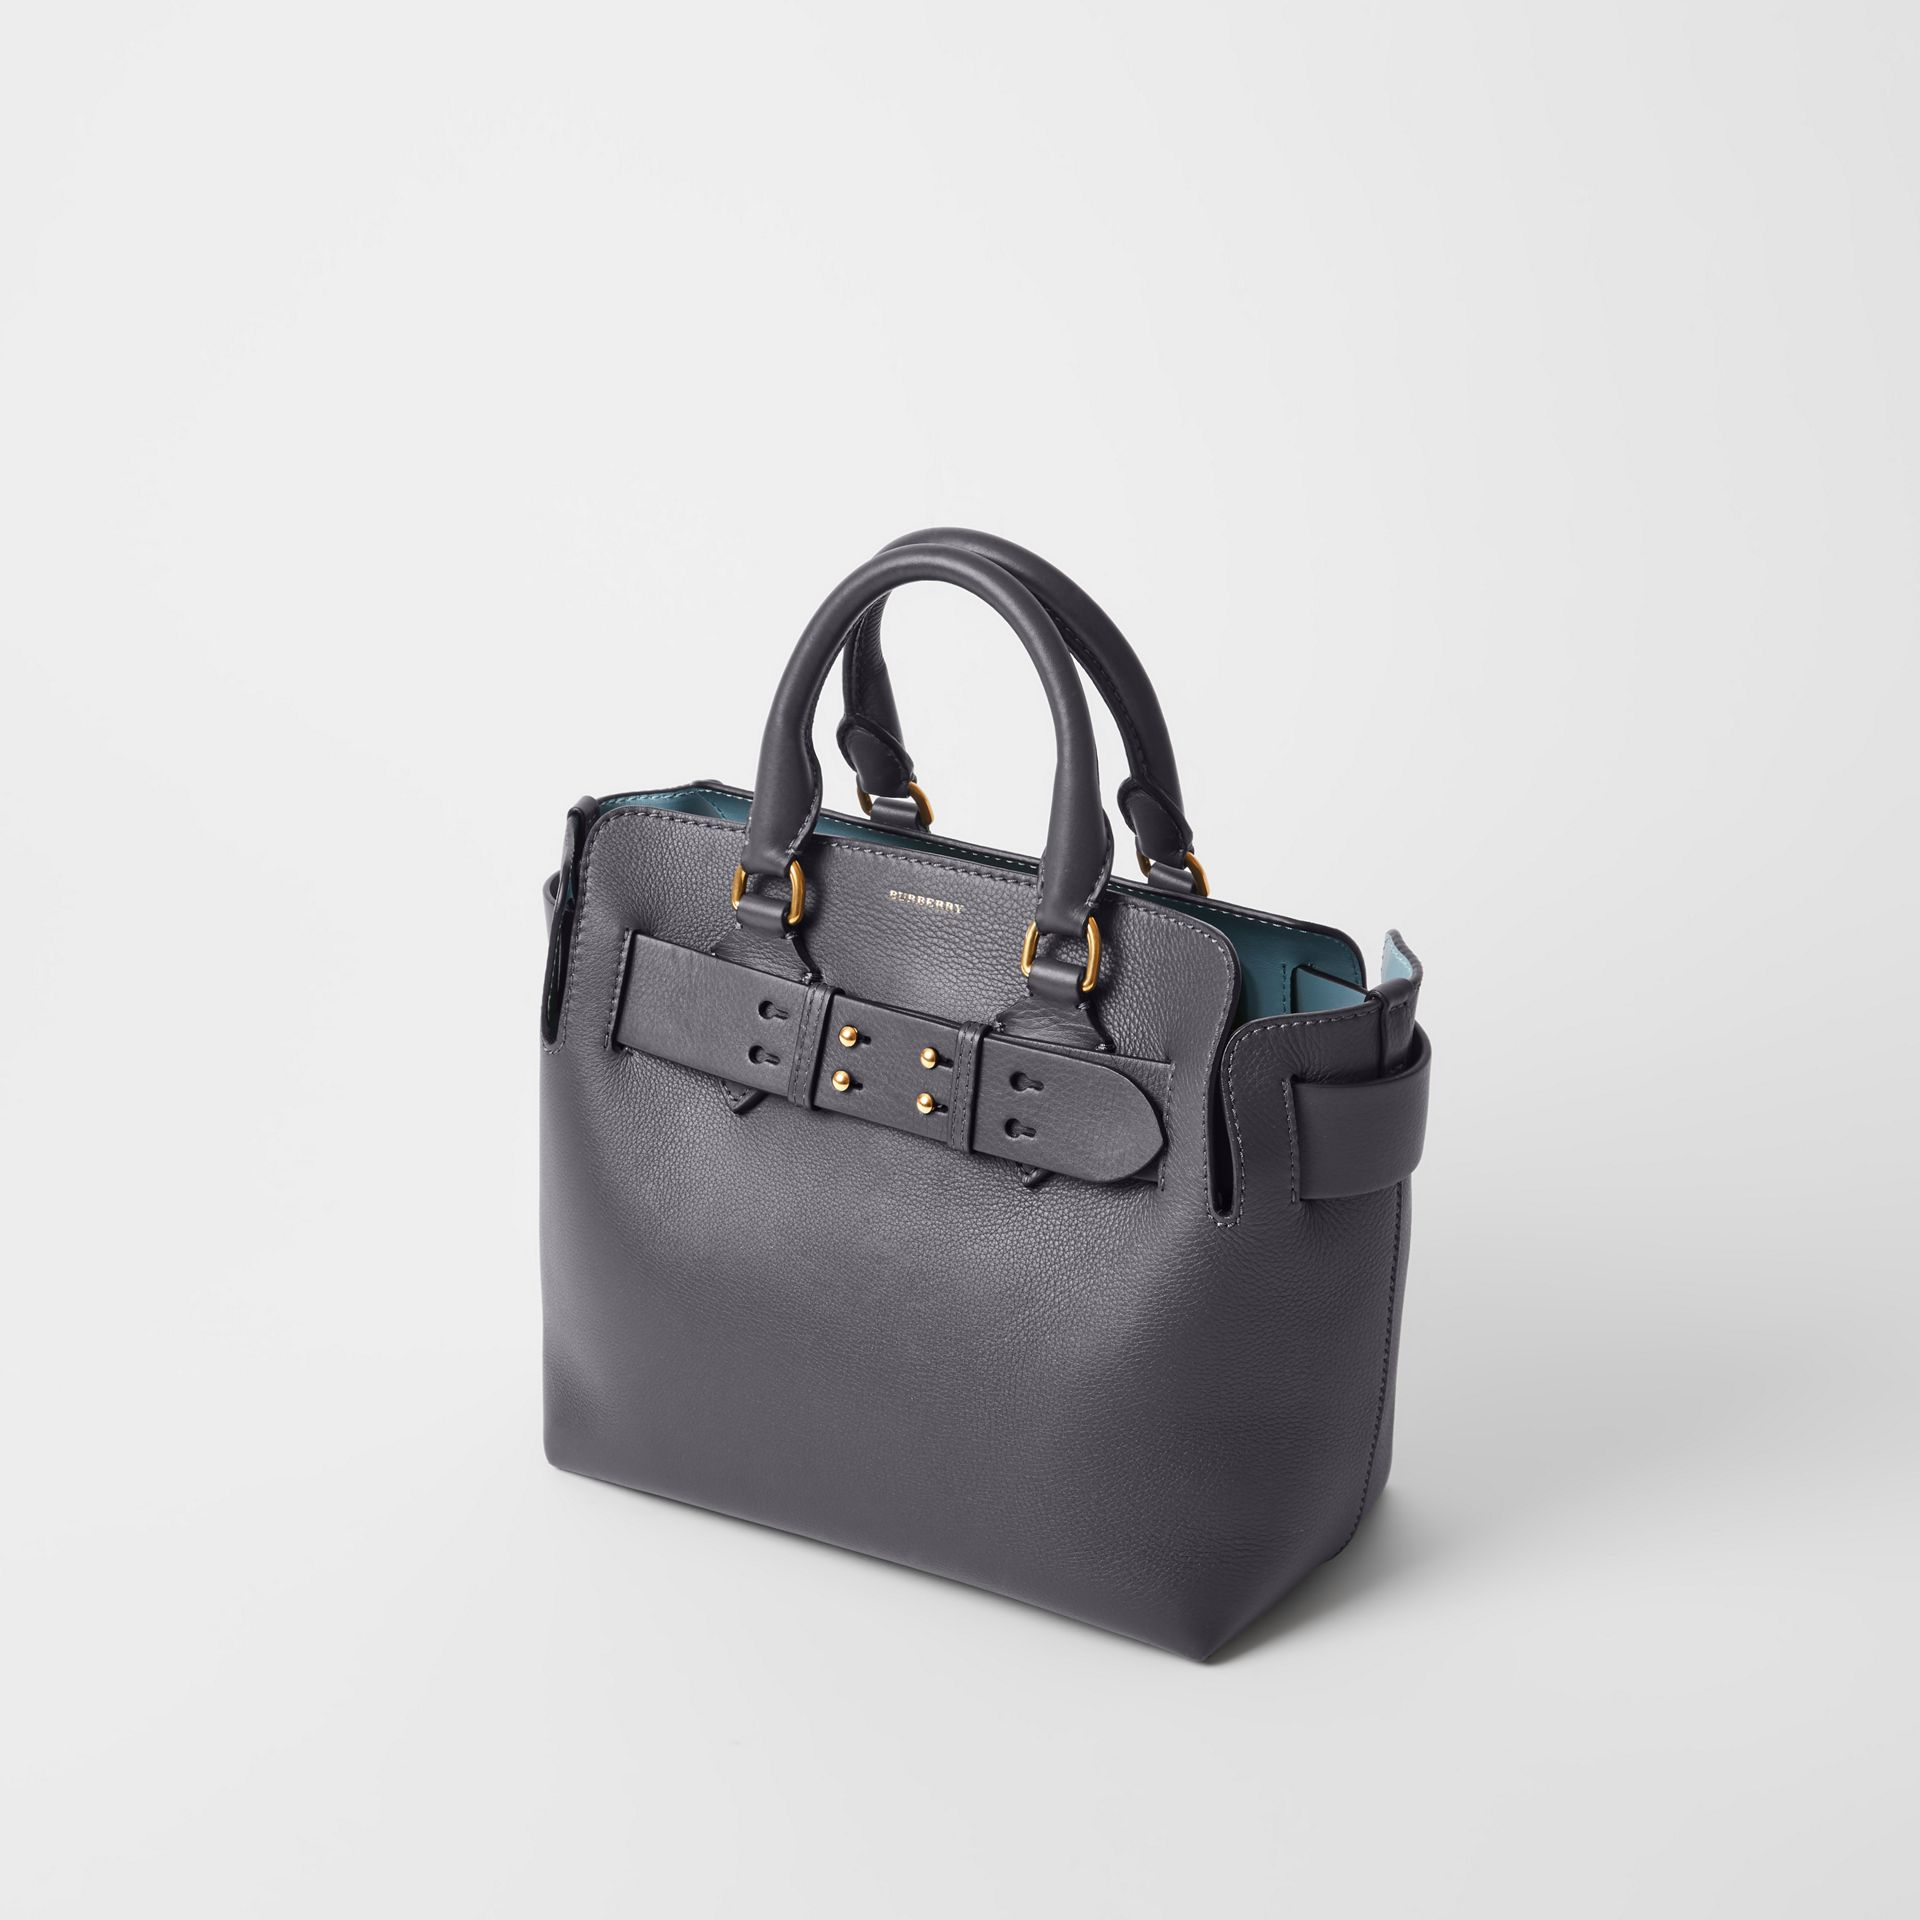 Petit sac The Belt en cuir (Gris Anthracite) - Femme | Burberry - photo de la galerie 3